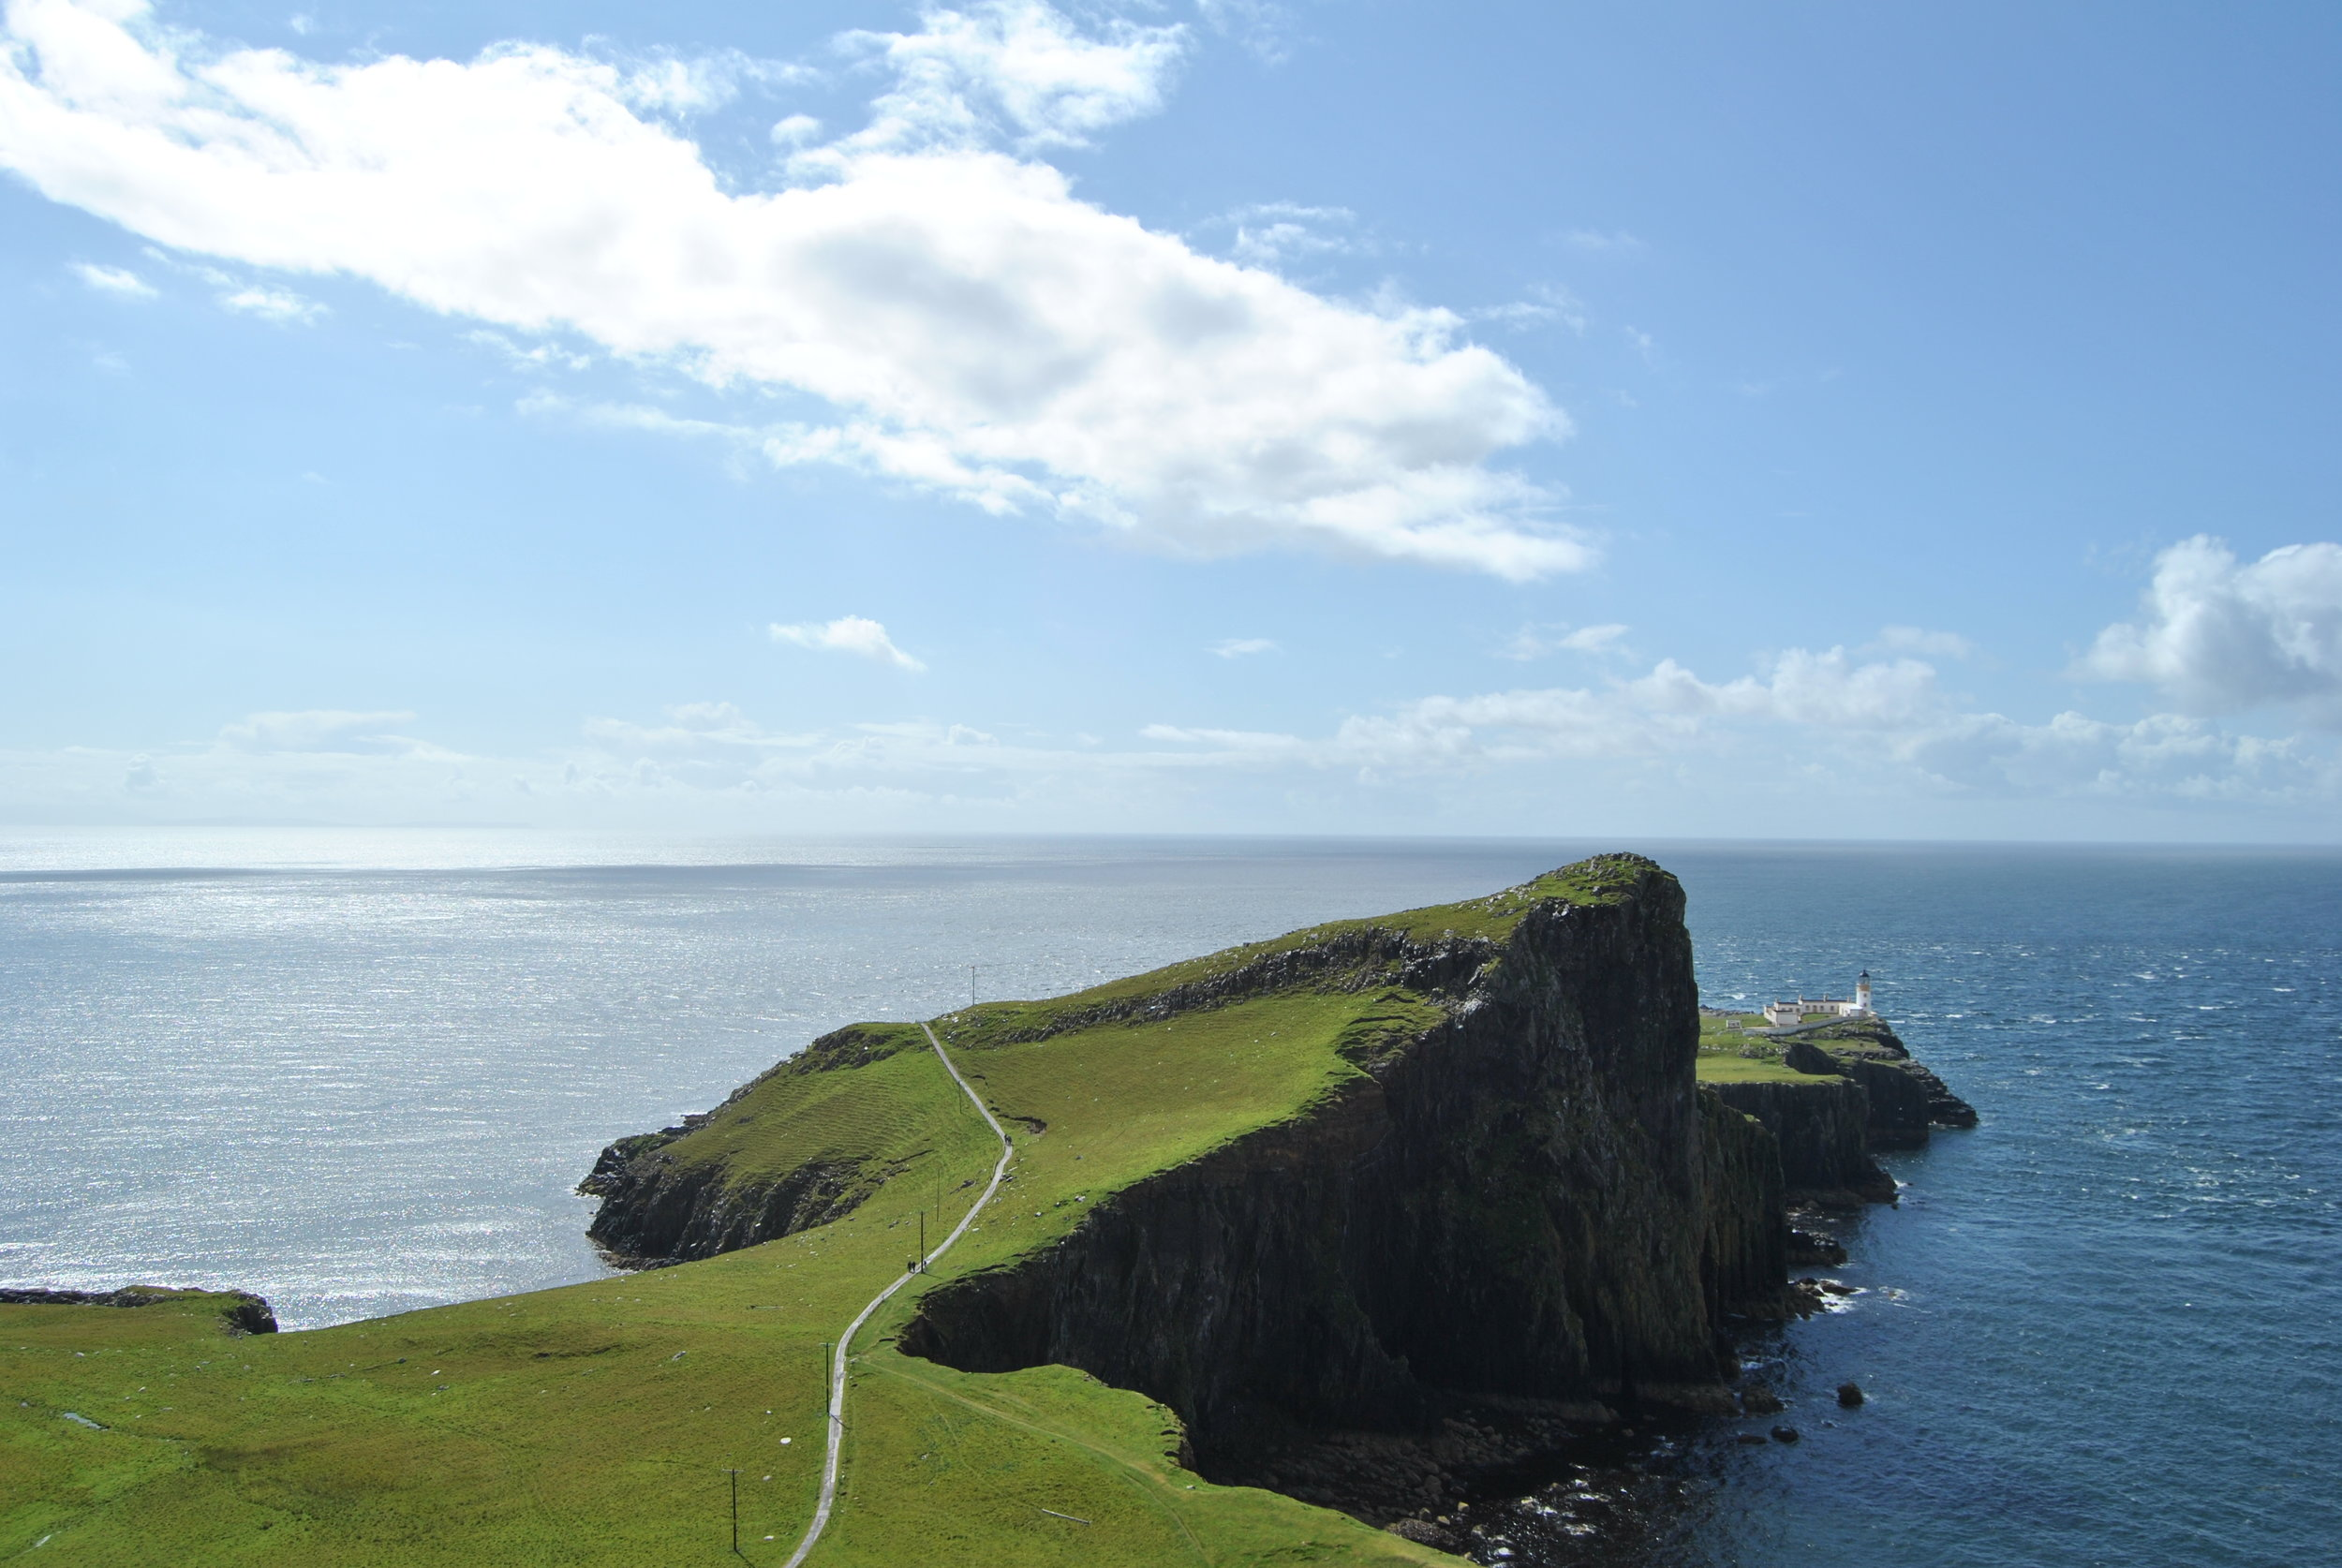 Neist Point - The most westerly point on Isle of Skye.